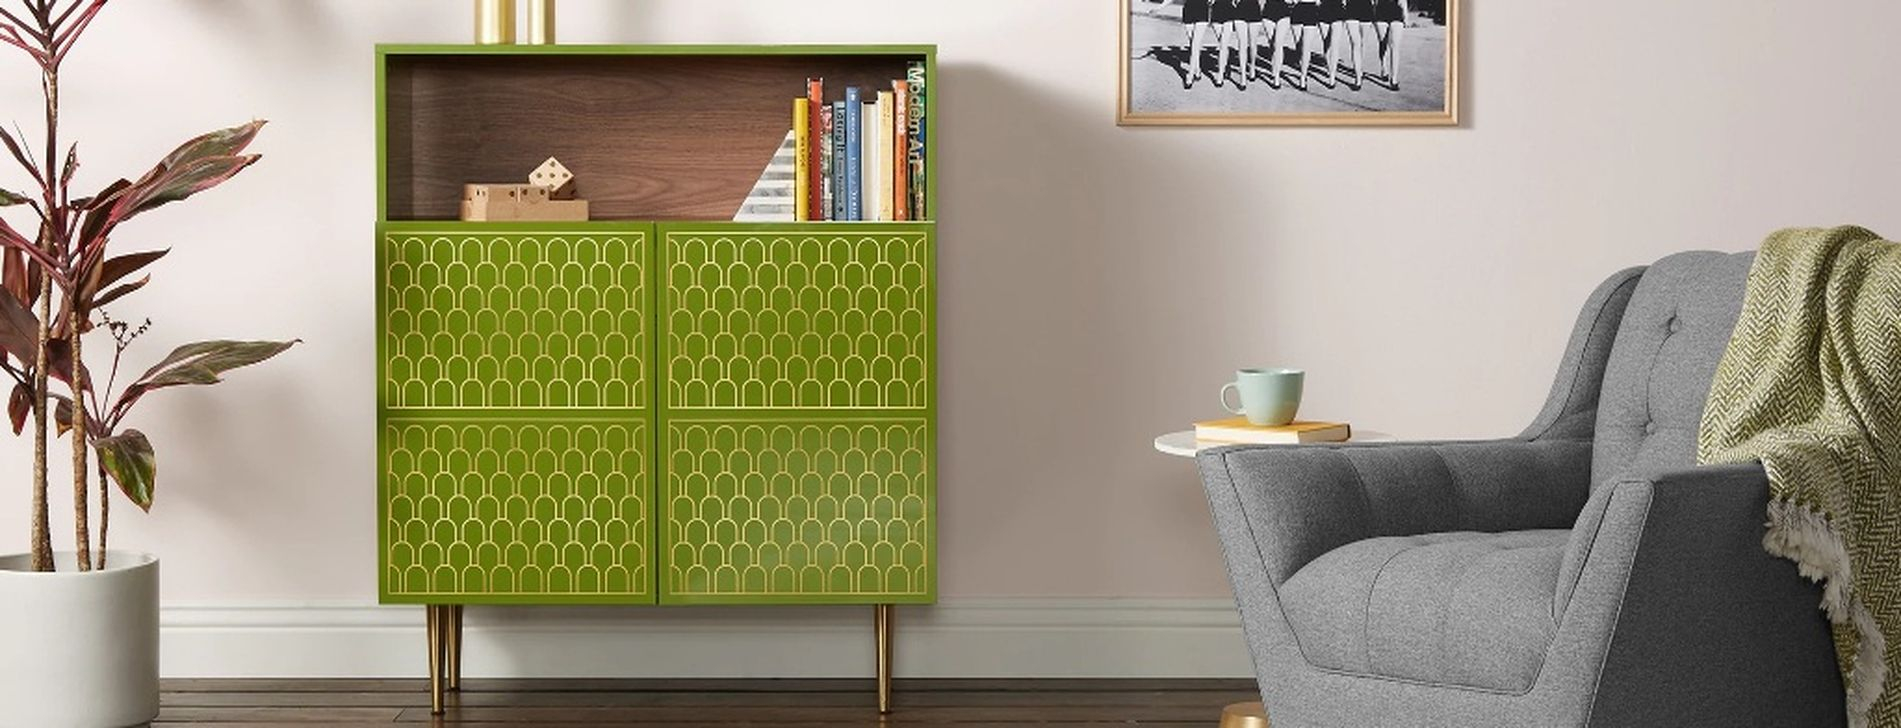 Cool Diy Wooden Cabinet Design Ideas For Book To Try 36